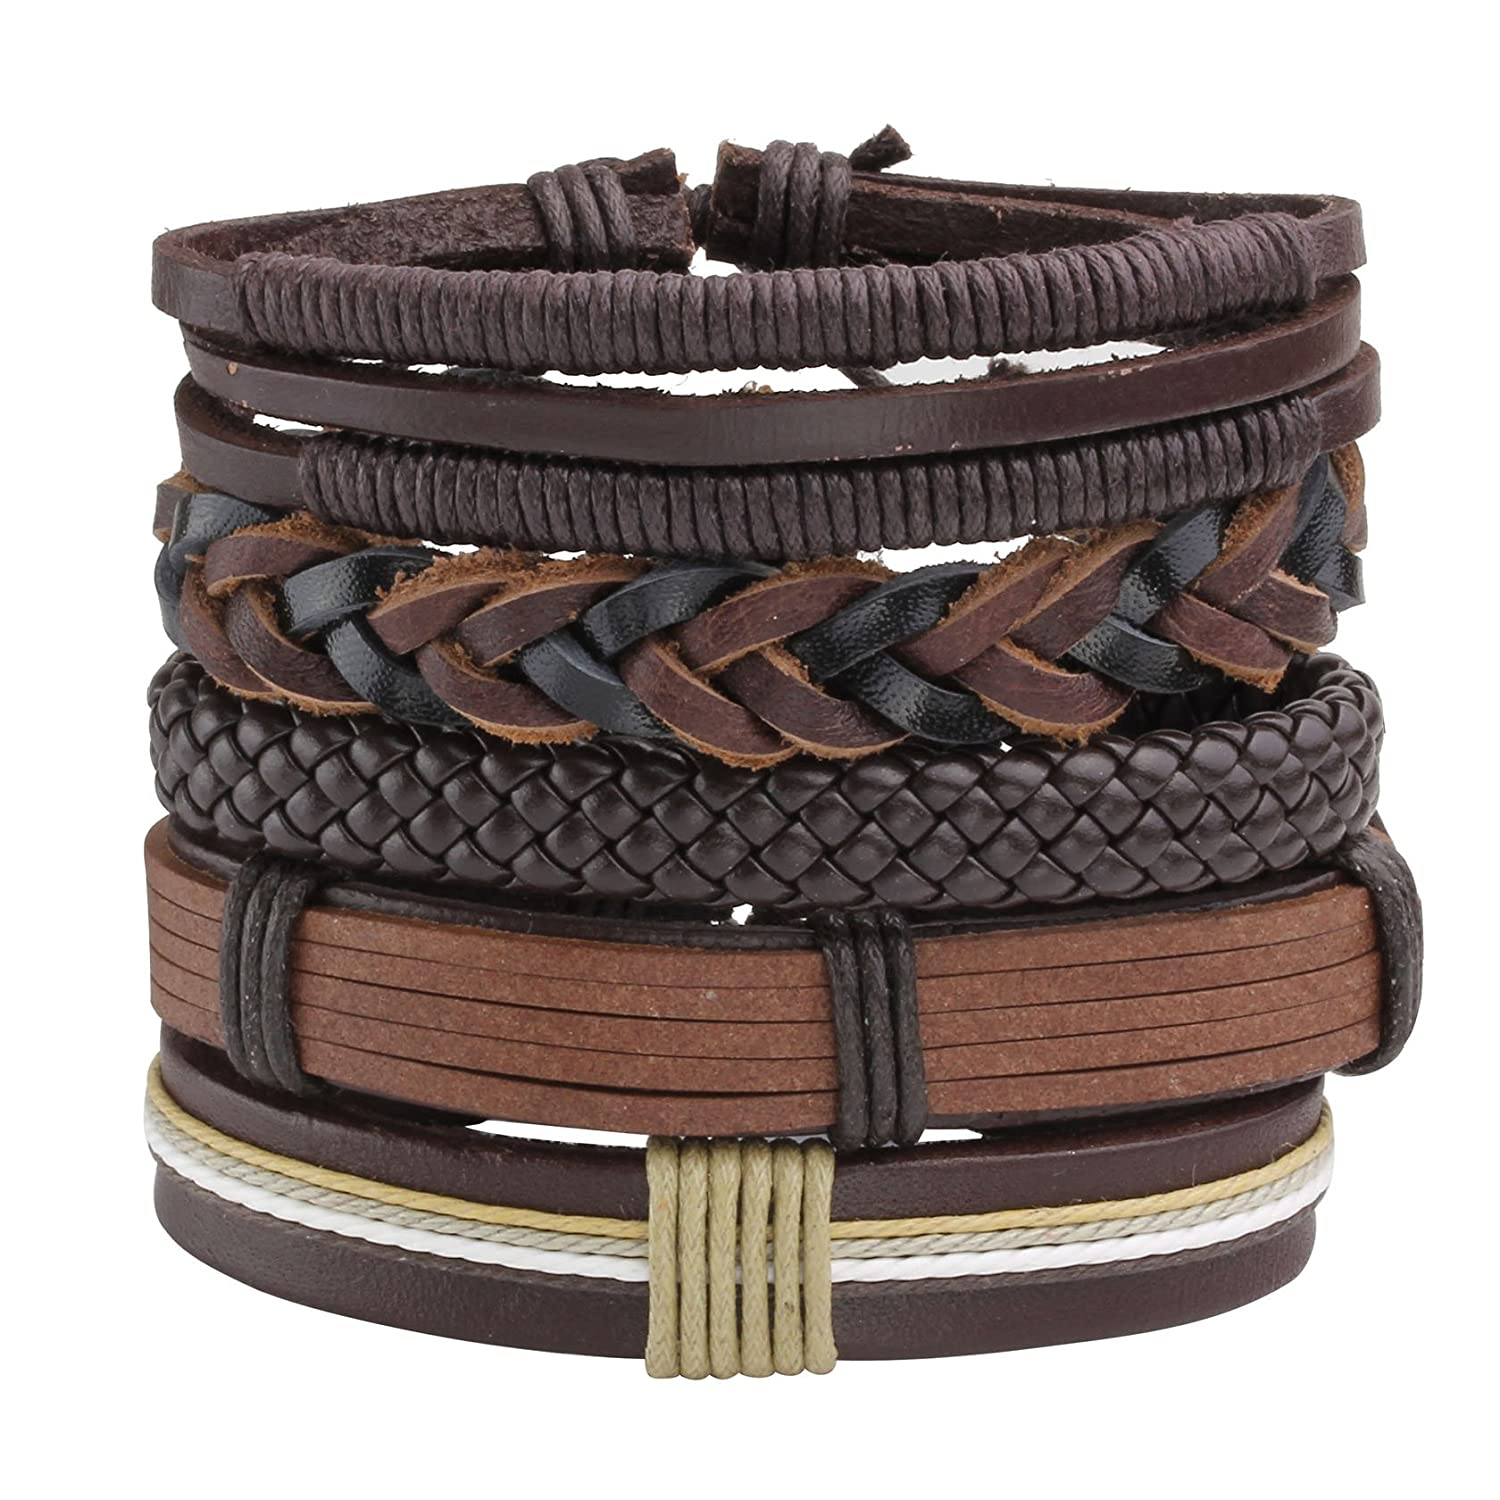 MILAKOO 8Pcs Black& Brown Braided Leather Bracelet for Men Women Cuff Beaded Bracelet Adjustable POBRQN0000102